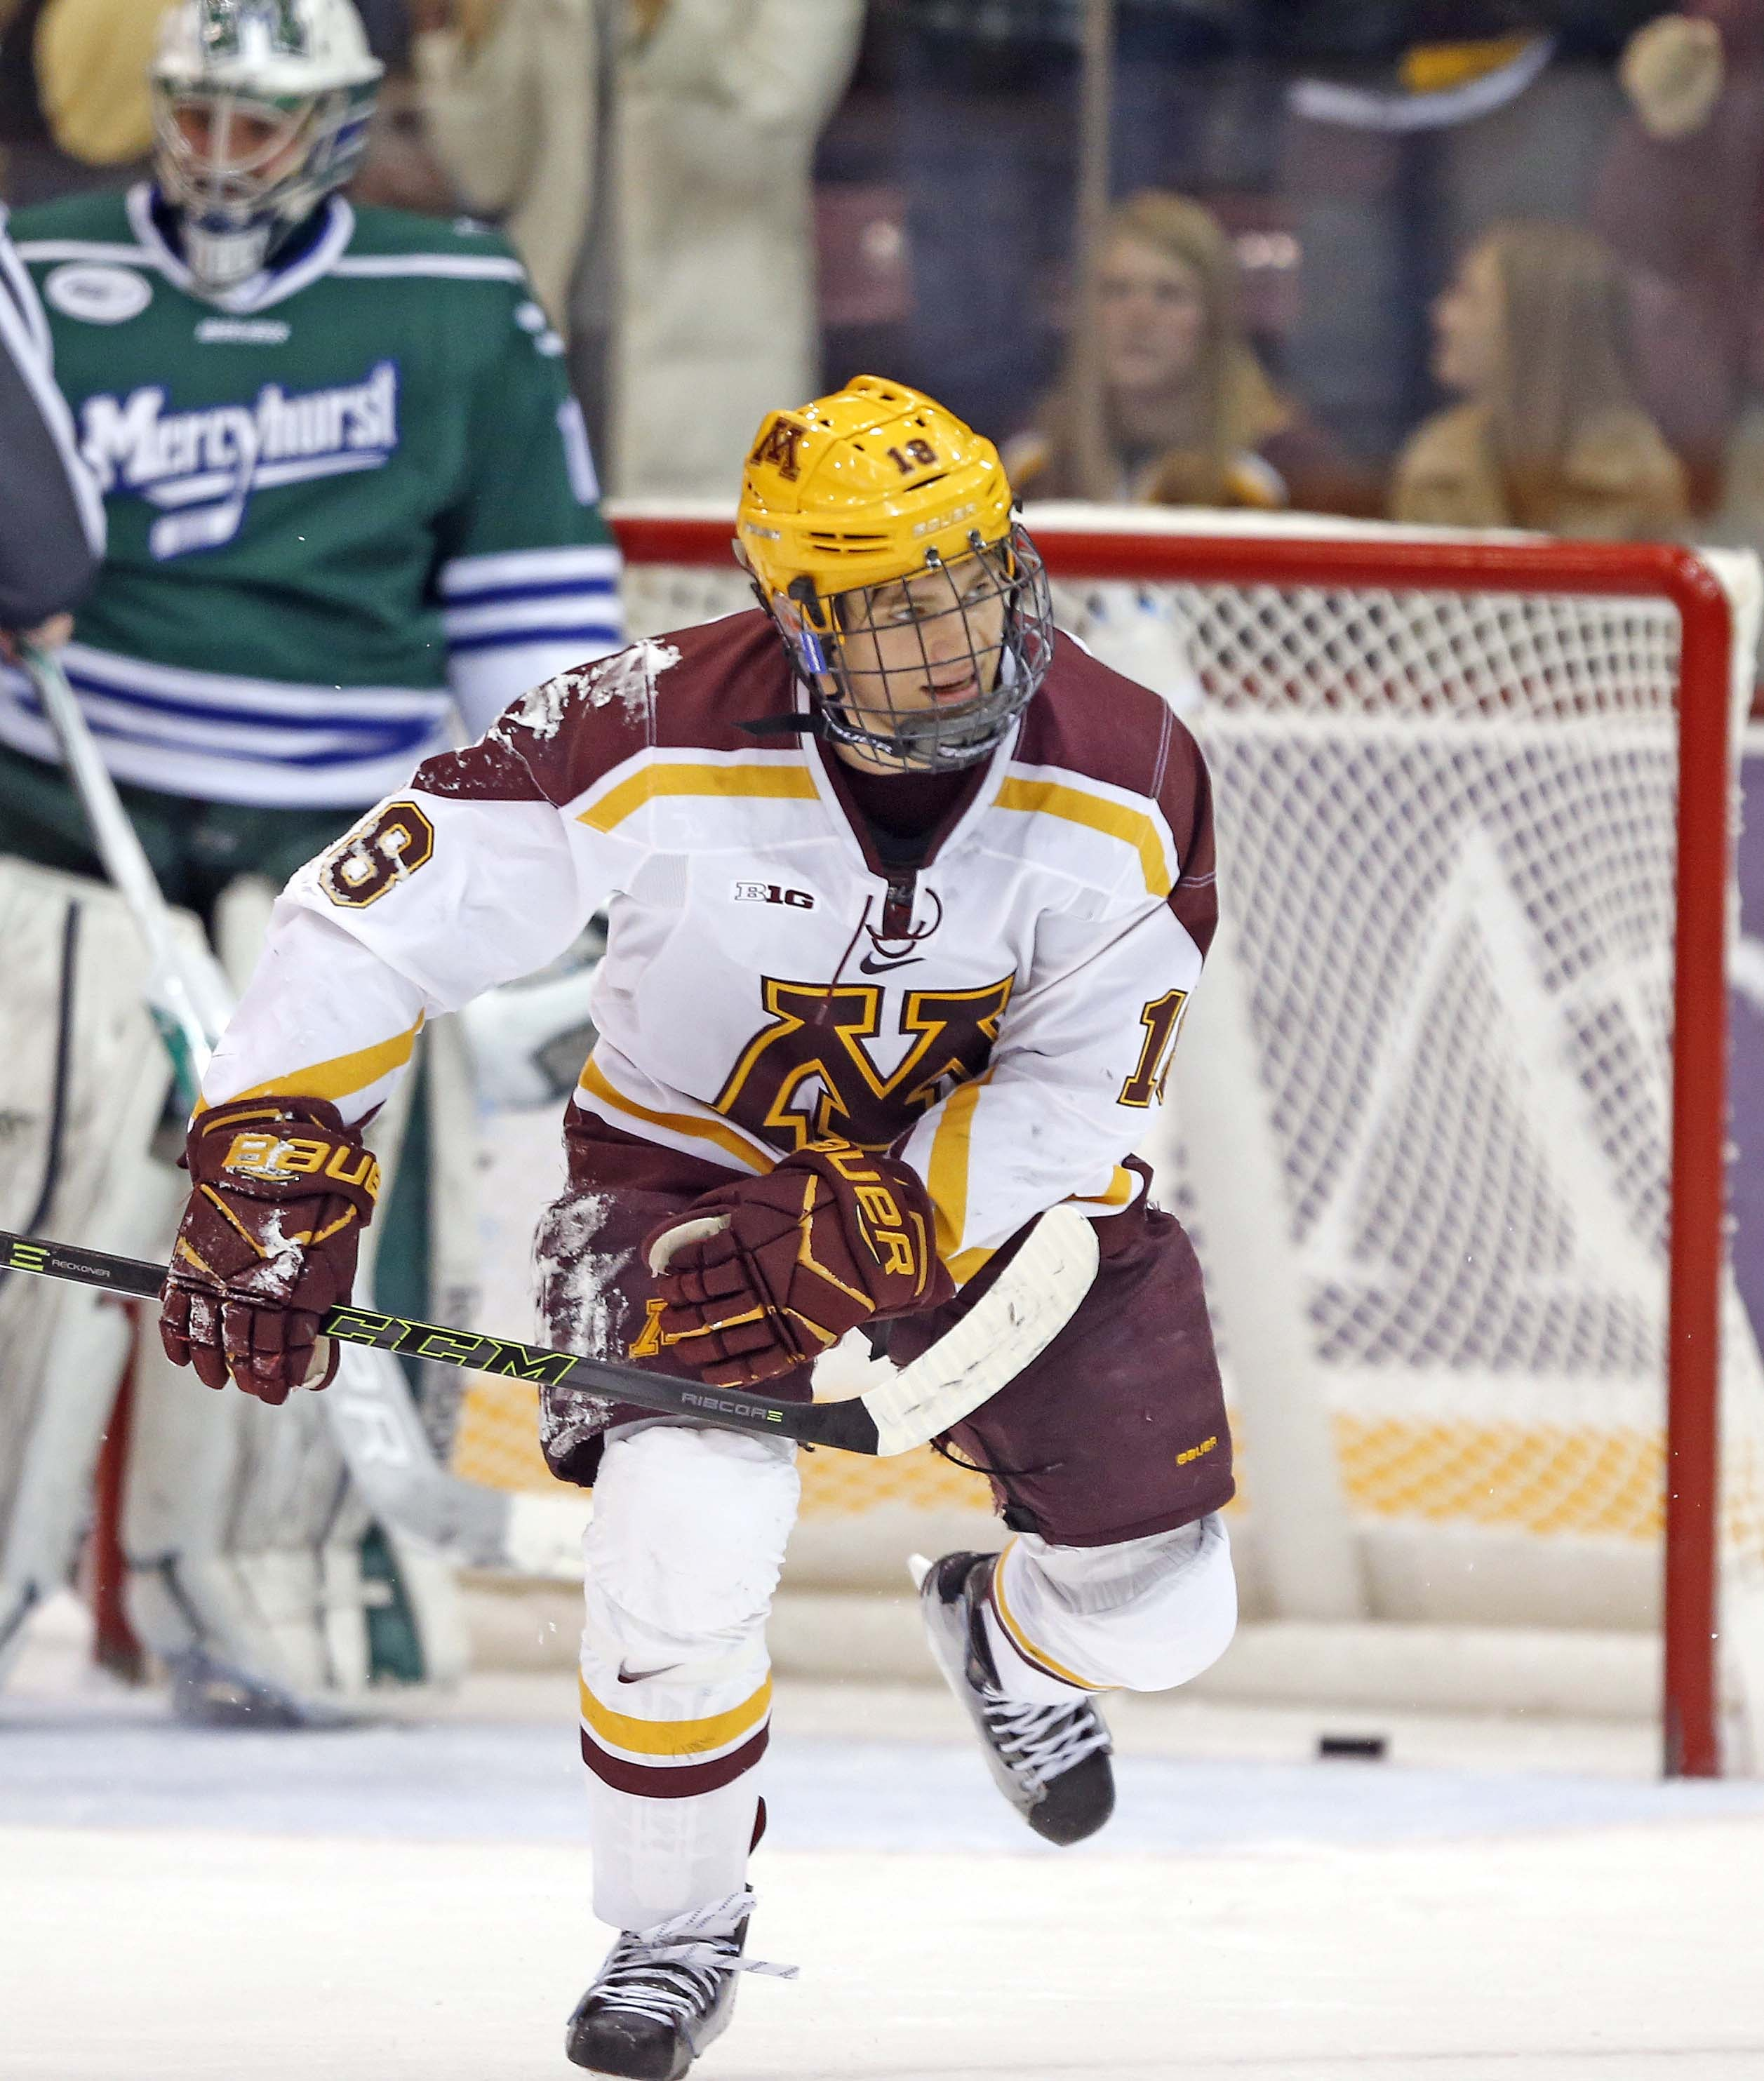 ceeaf7301a8 Gophers Host Clarkson This Weekend - University of Minnesota Athletics